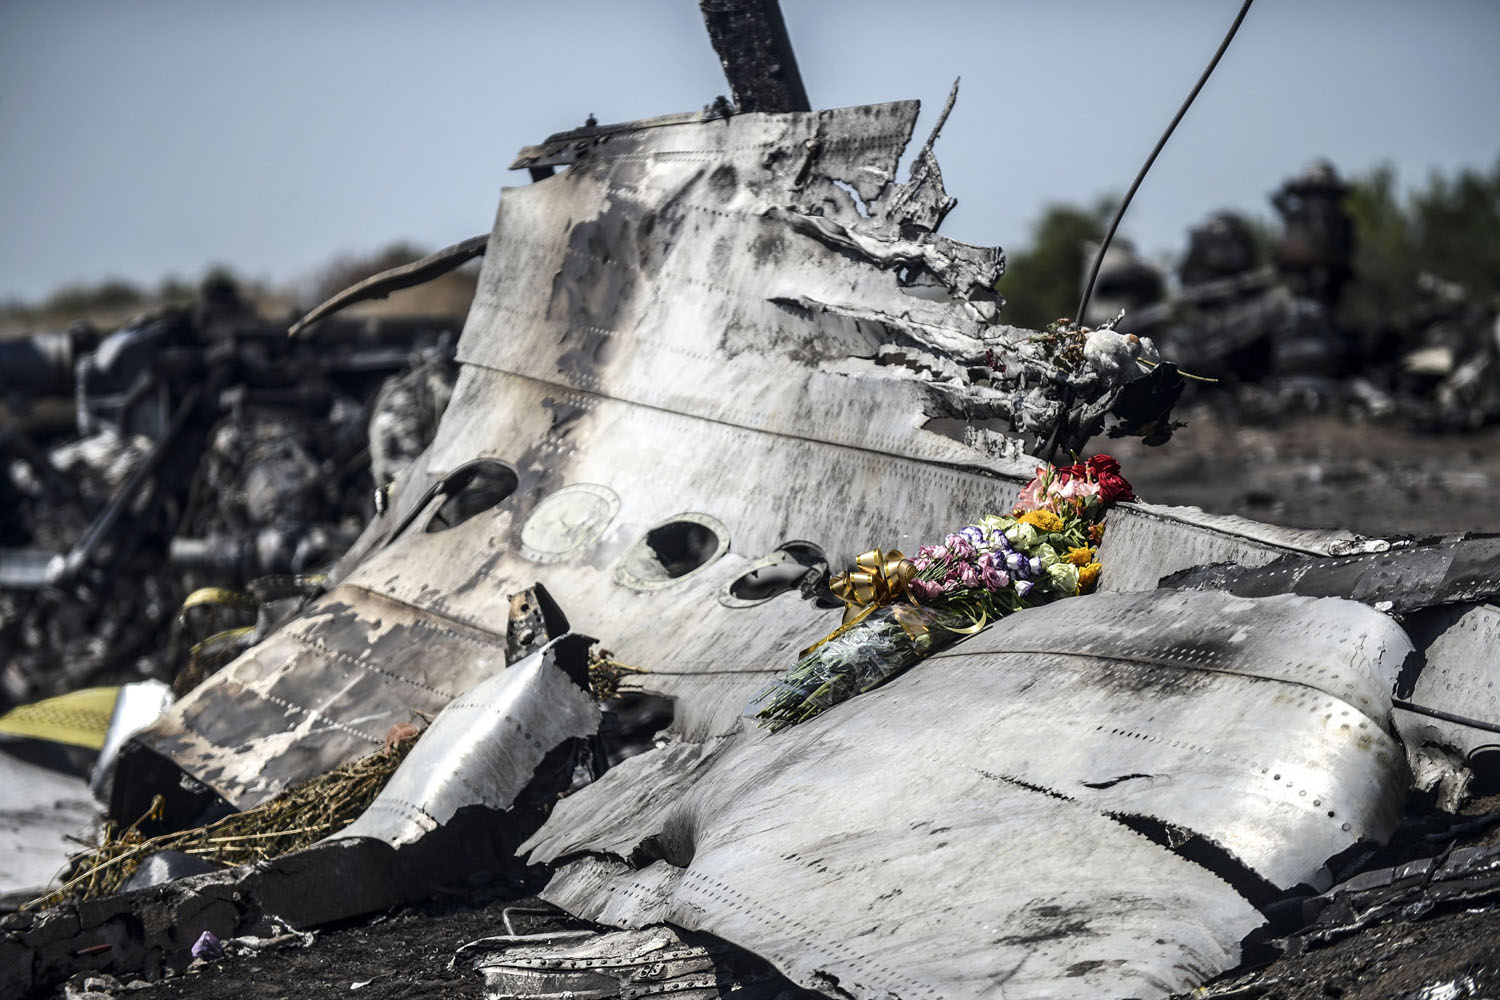 Jul. 26, 2014. Flowers, left by parents of an Australian victim of the crash, laid on a piece of the Malaysia Airlines plane MH17, near the village of Hrabove (Grabovo), in the Donetsk region.